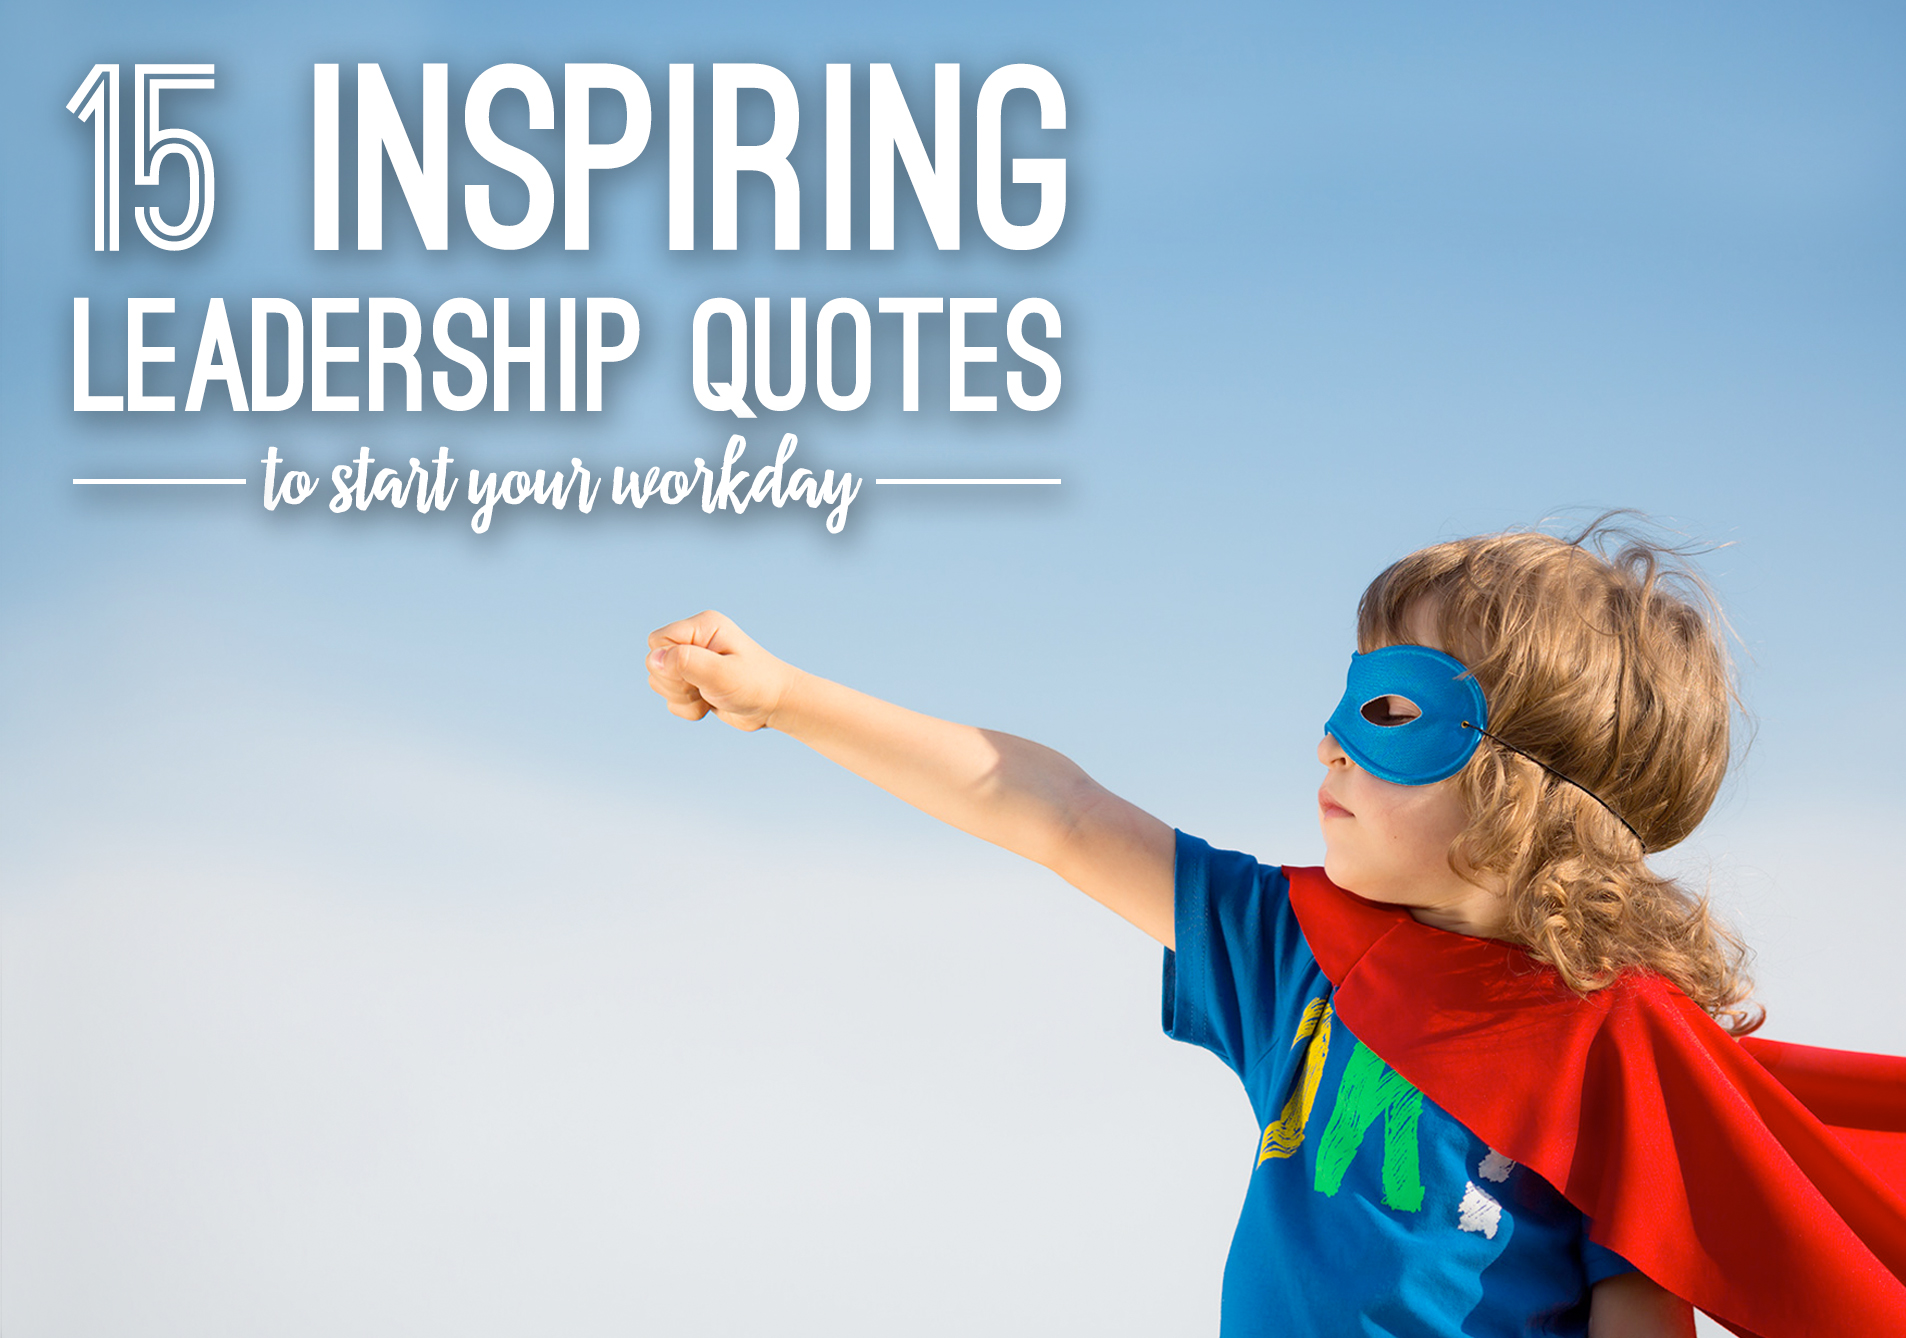 Inspiring Leadership Quotes 15 Inspiring Leadership Quotes To Start Your Workday  Mazuma